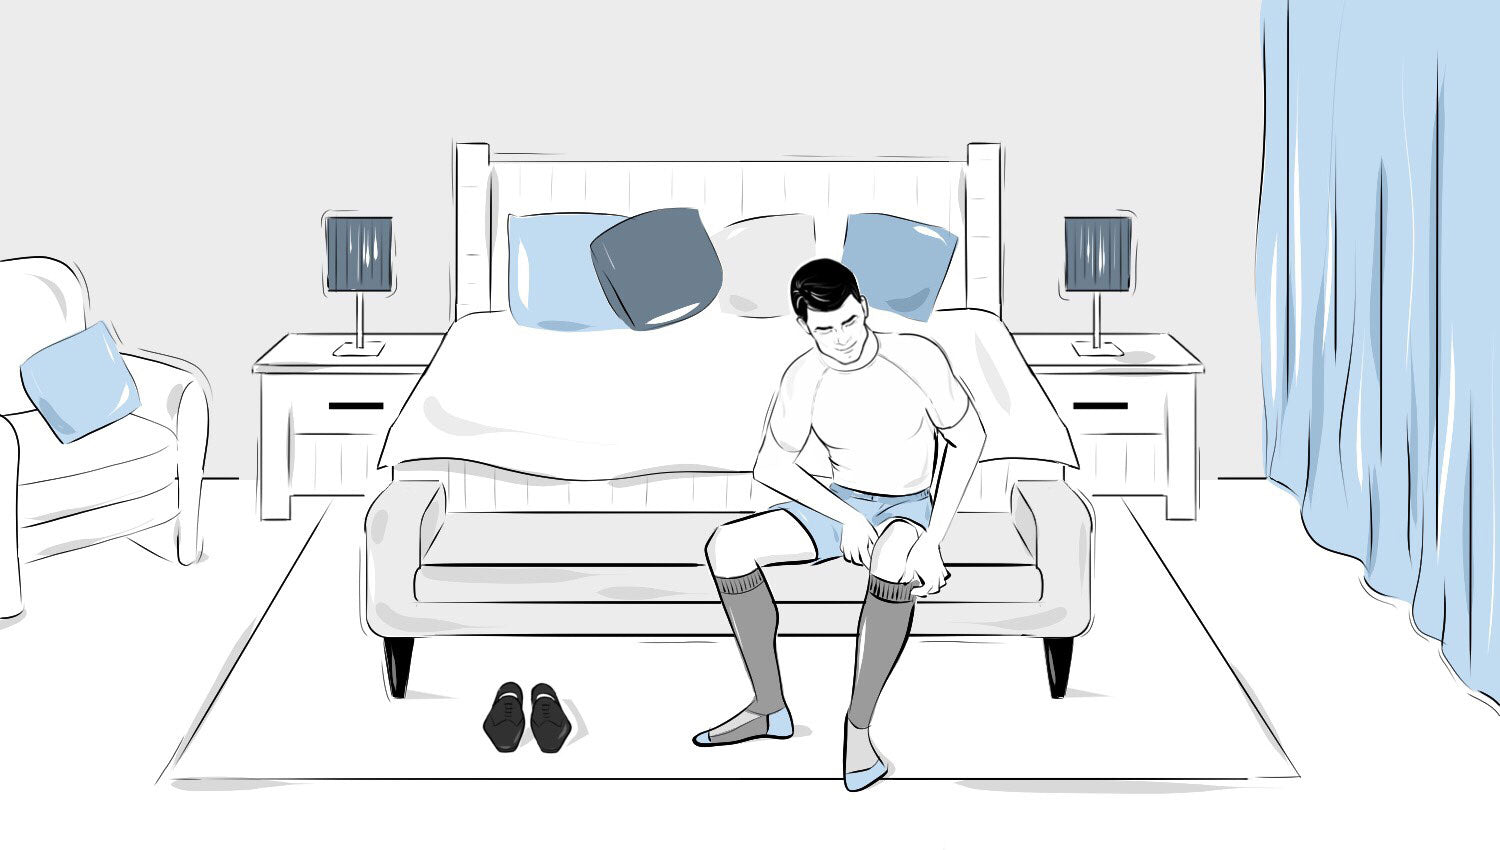 How to prevent socks from falling